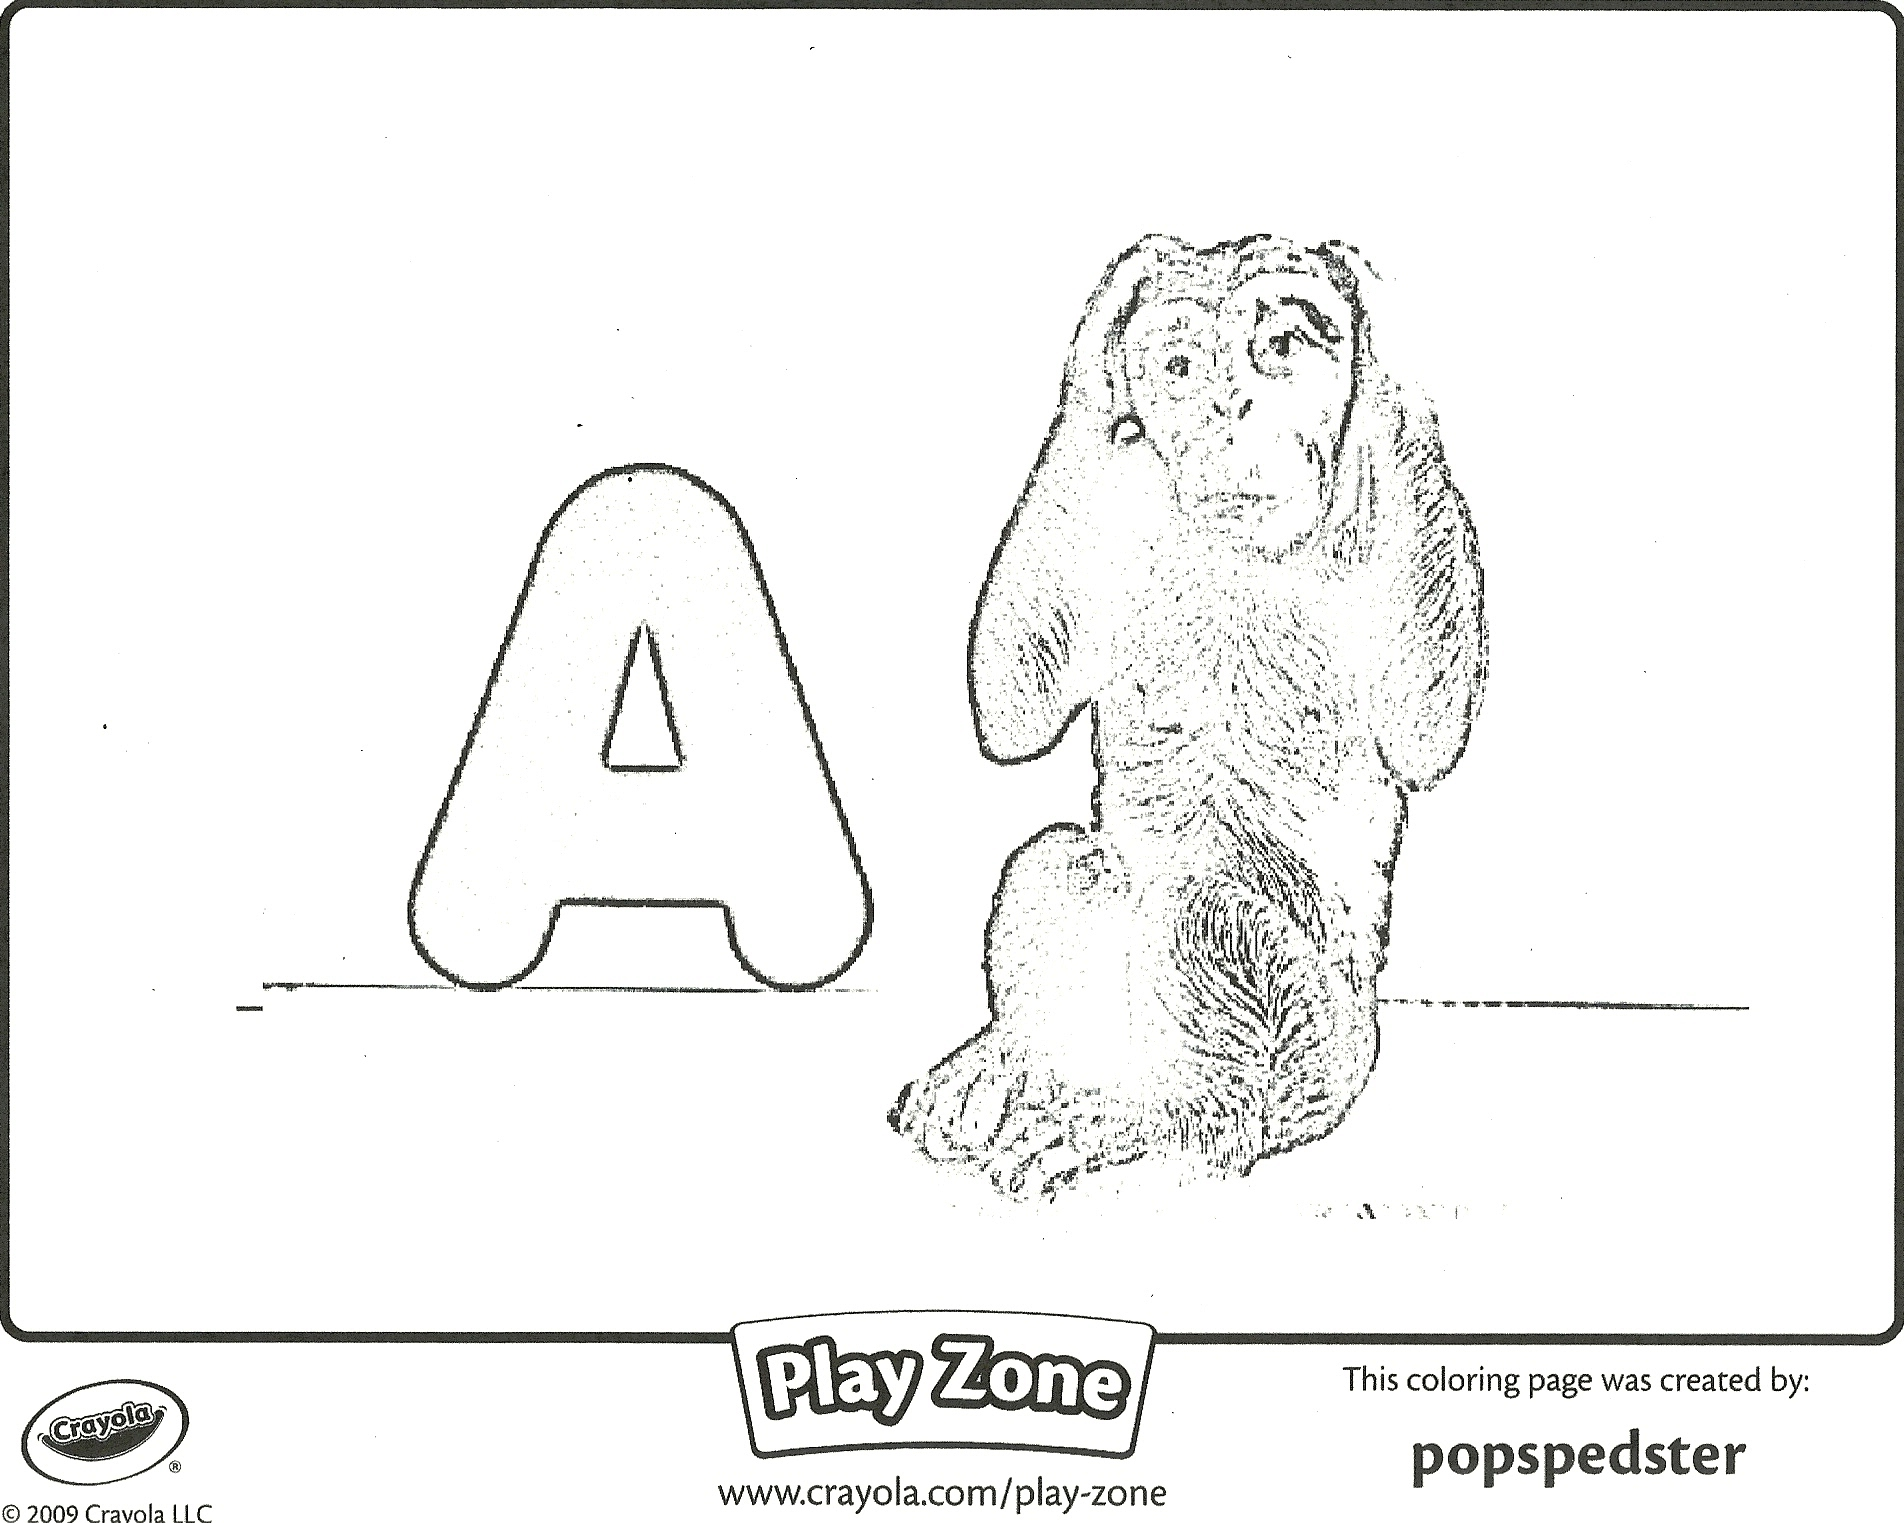 Focusing On The Letter A